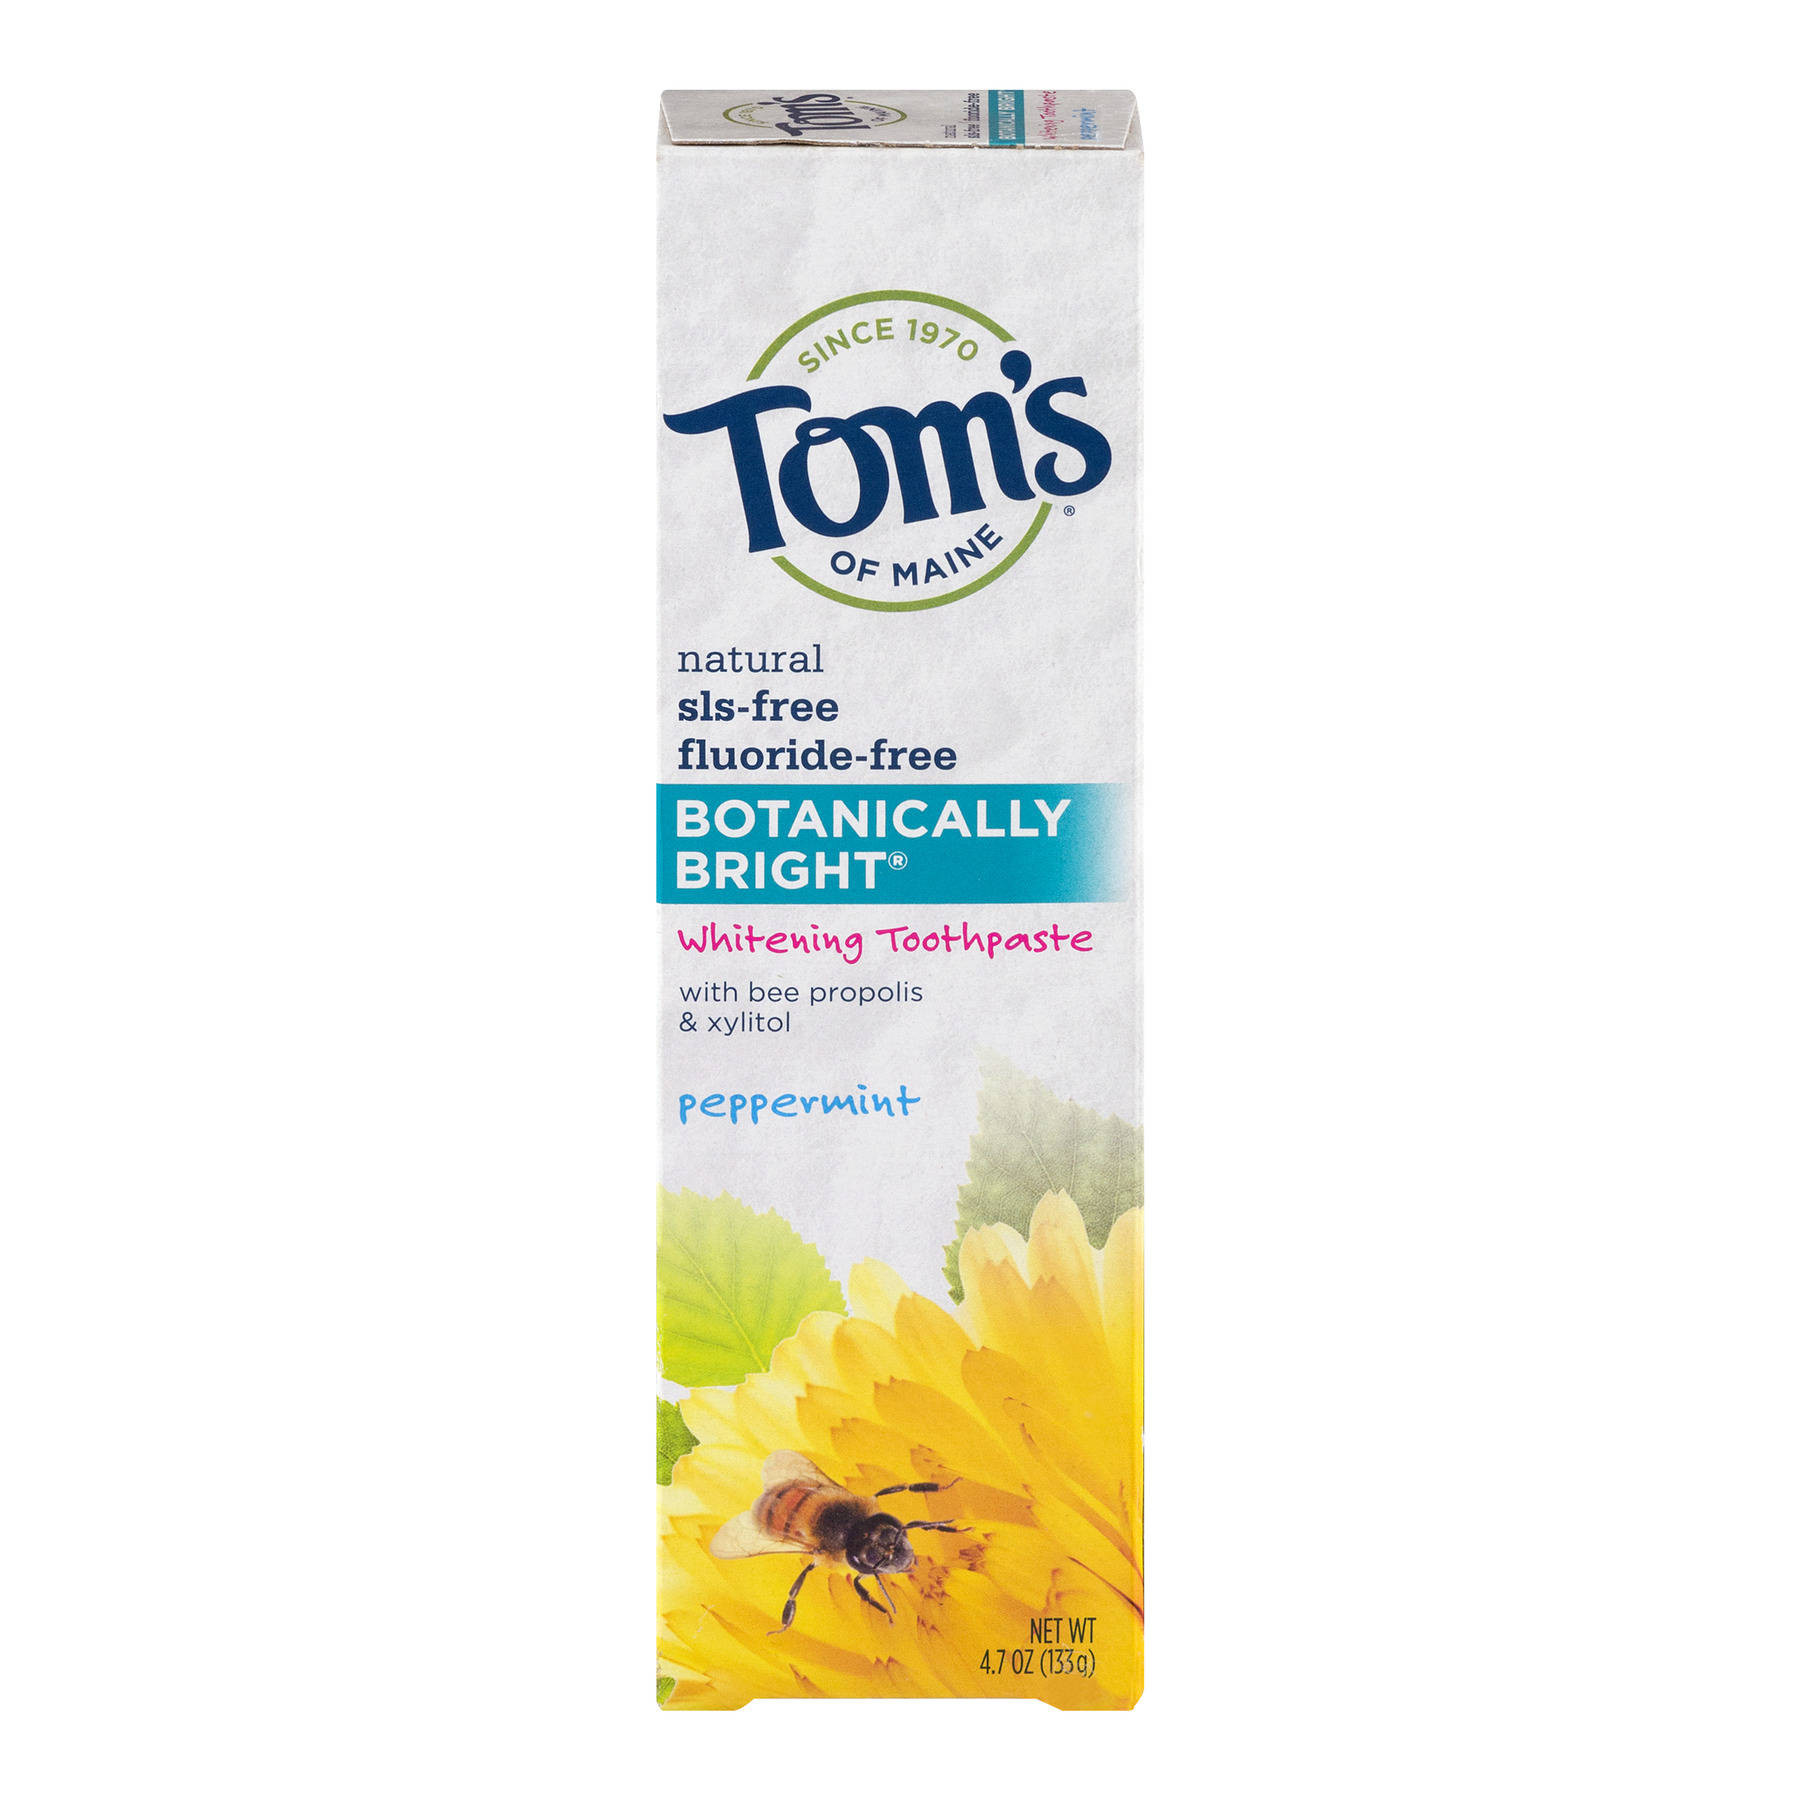 Toms Of Maine Slsfree fluoridefree Botanically Bright Whitening